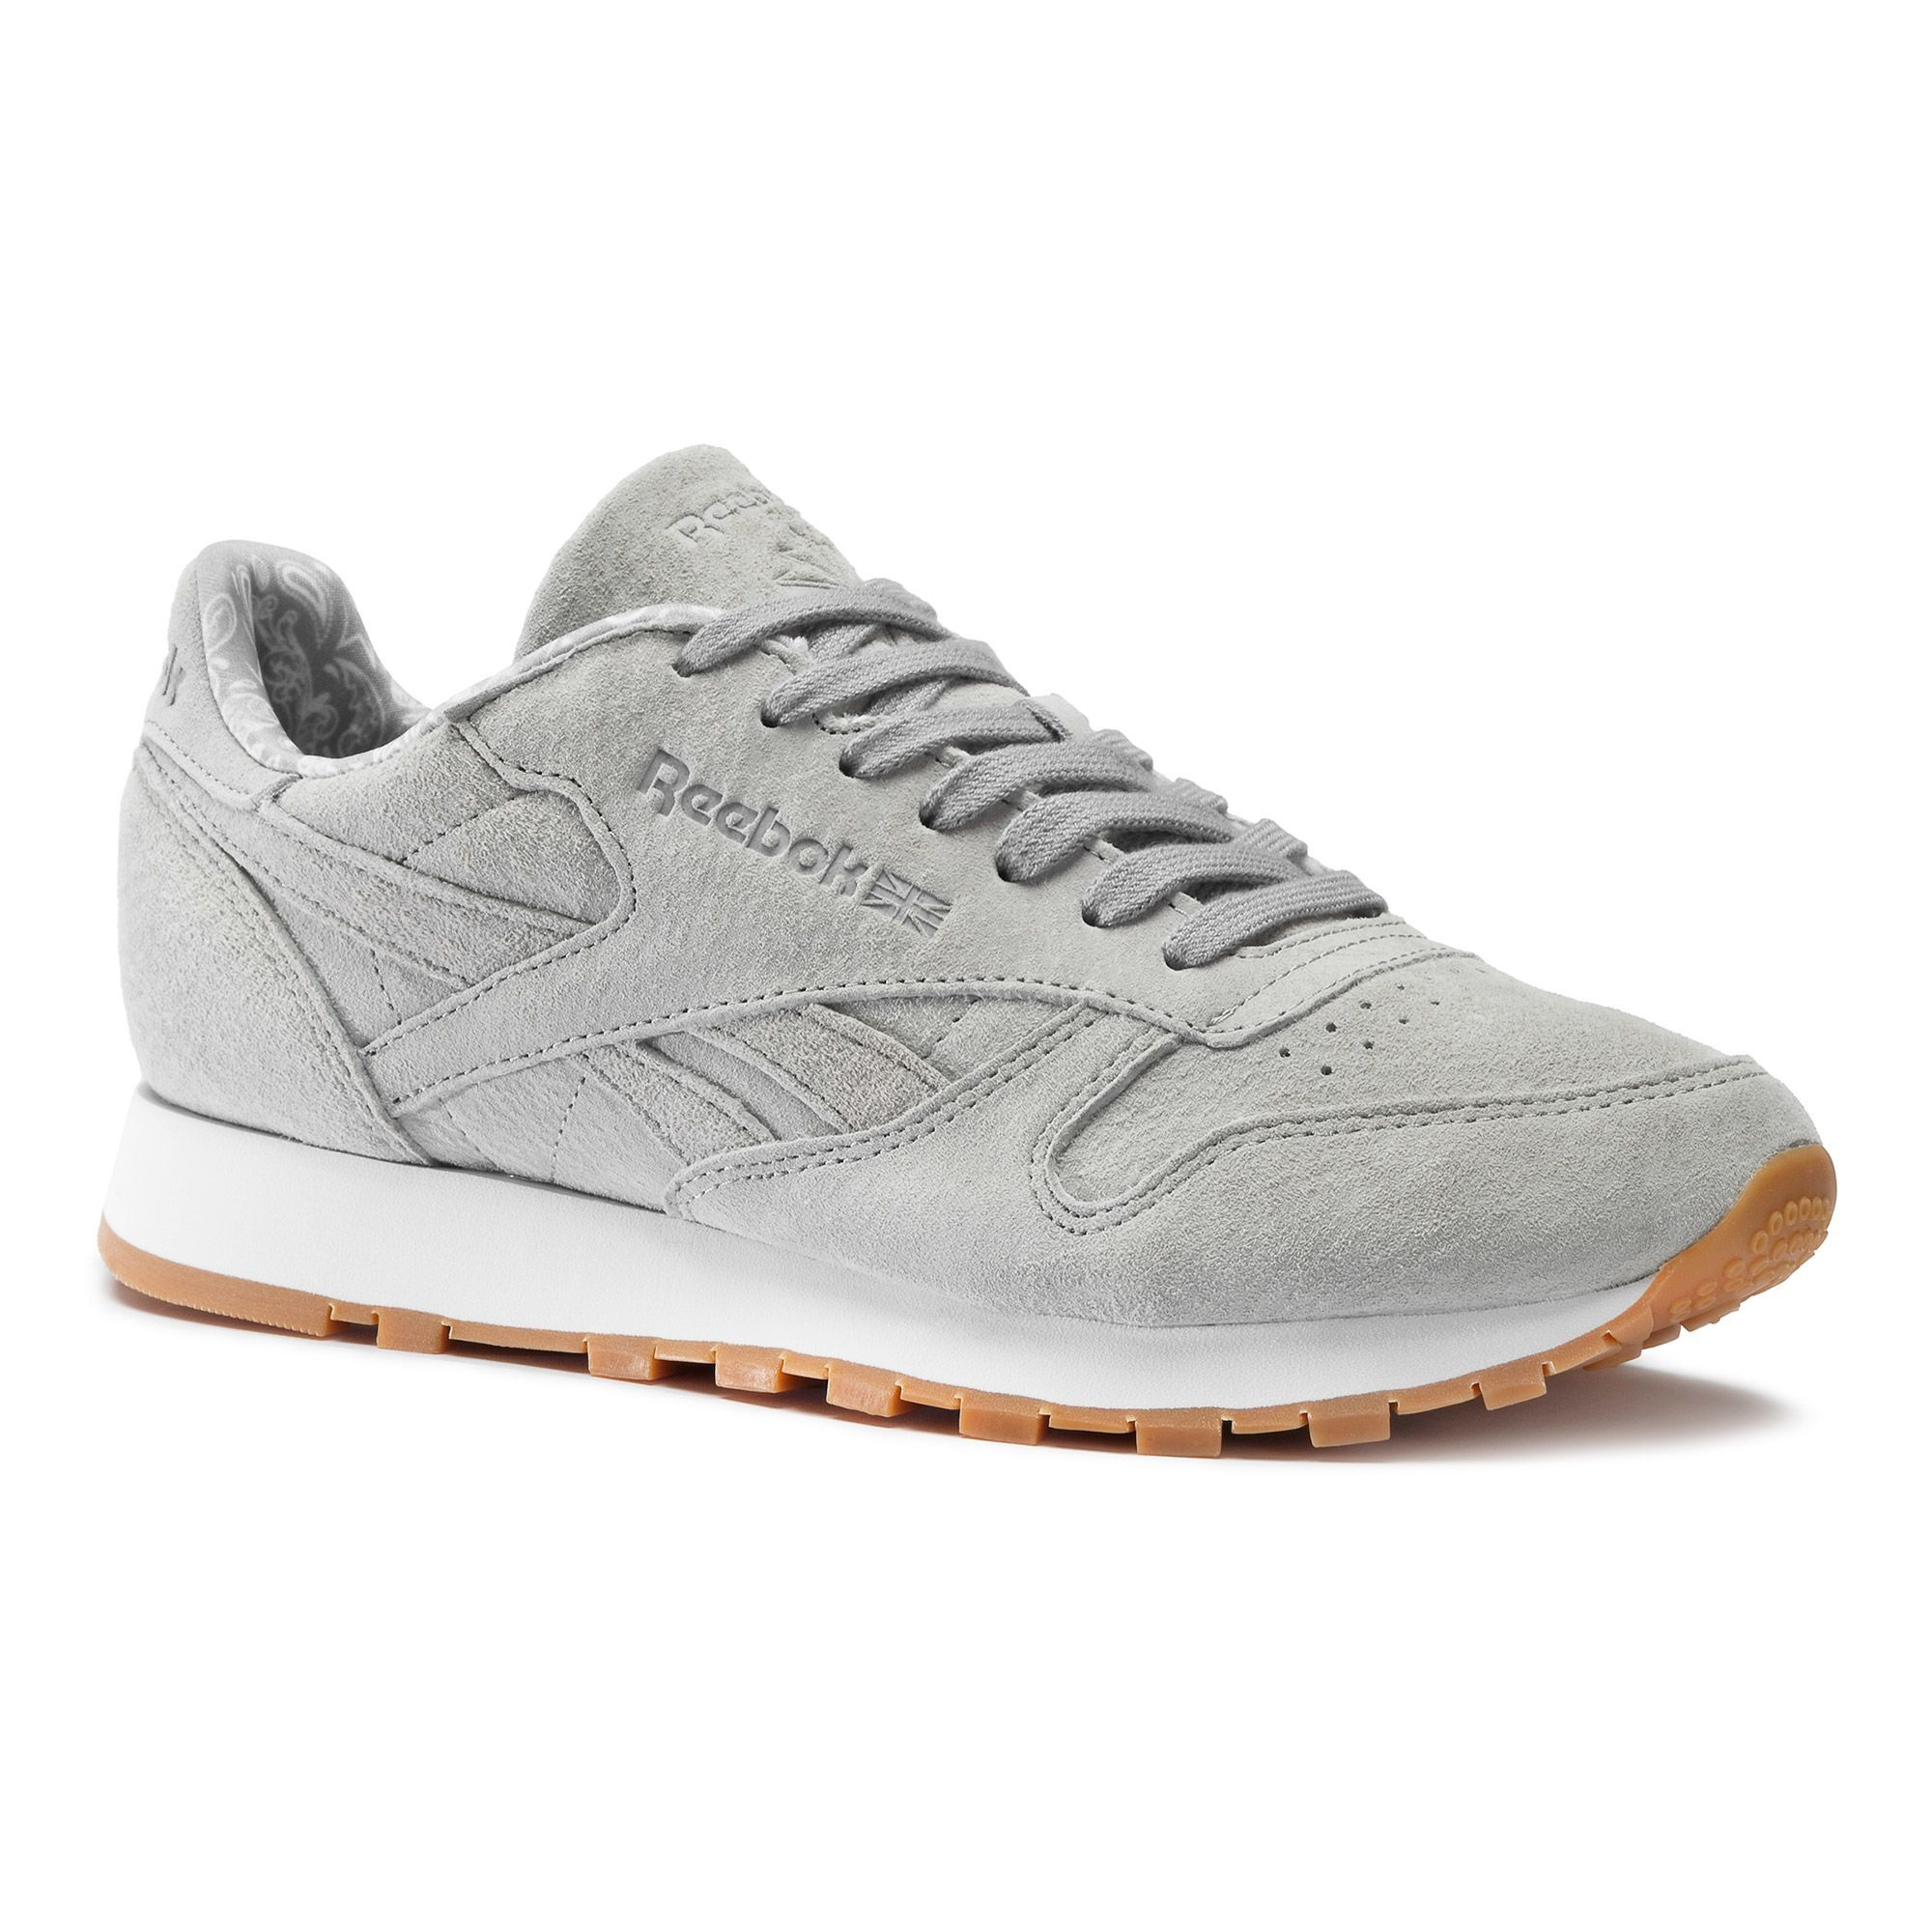 Grey Gym Wear & Gym Trainers| Reebok Official Shop